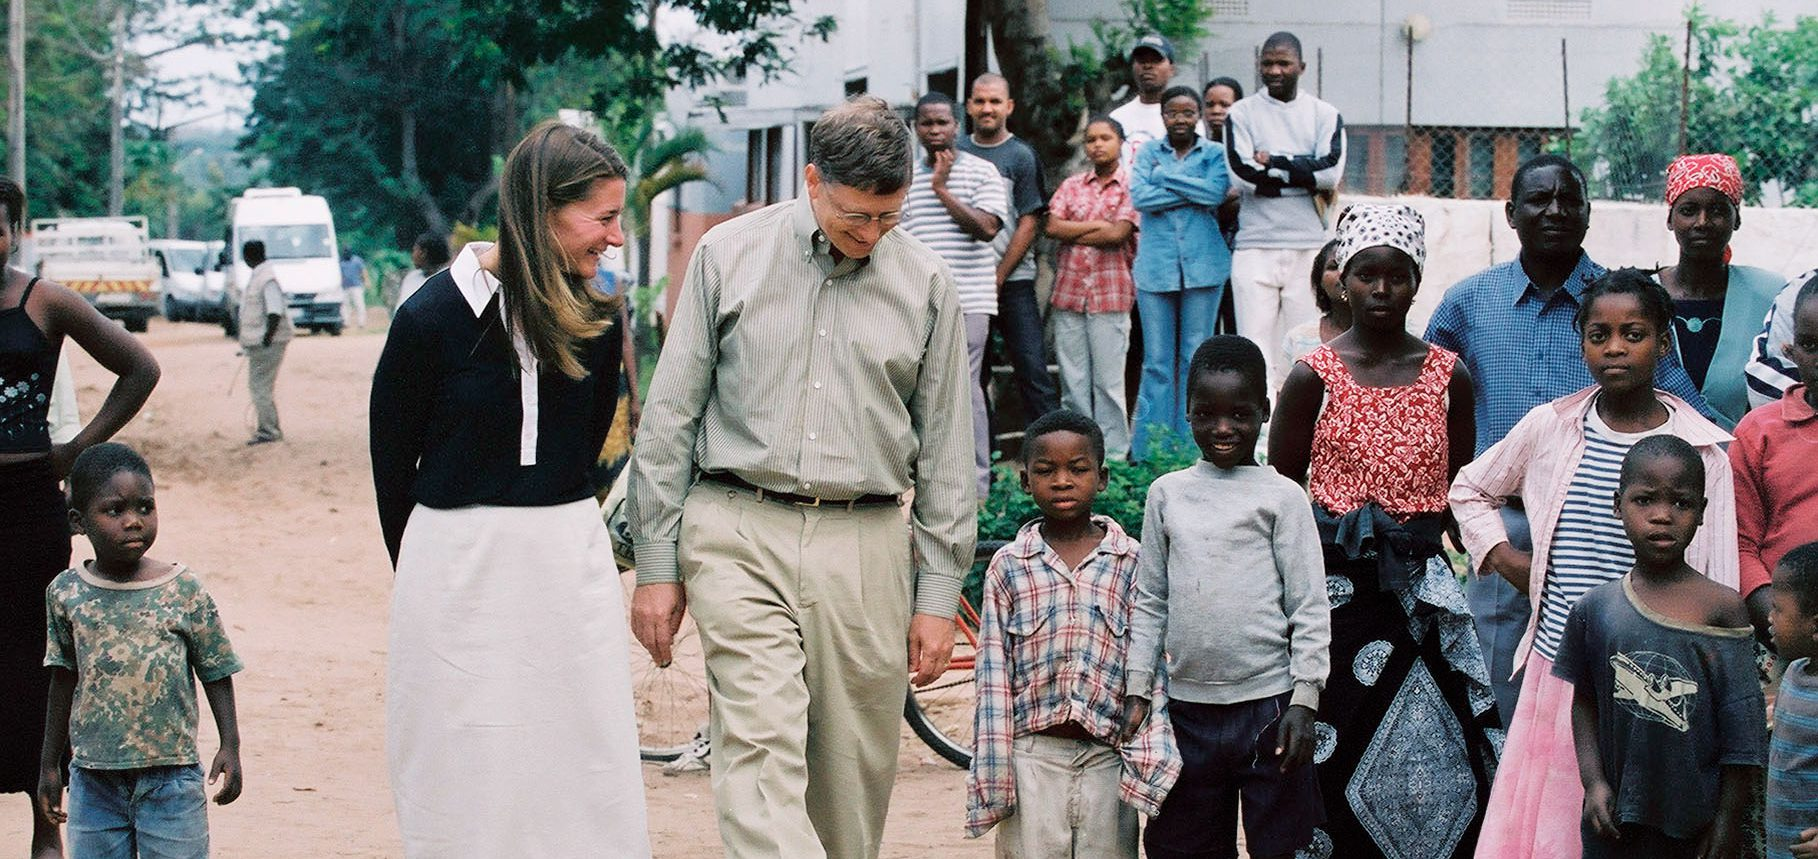 bill and melinda gates walk with children in third world country